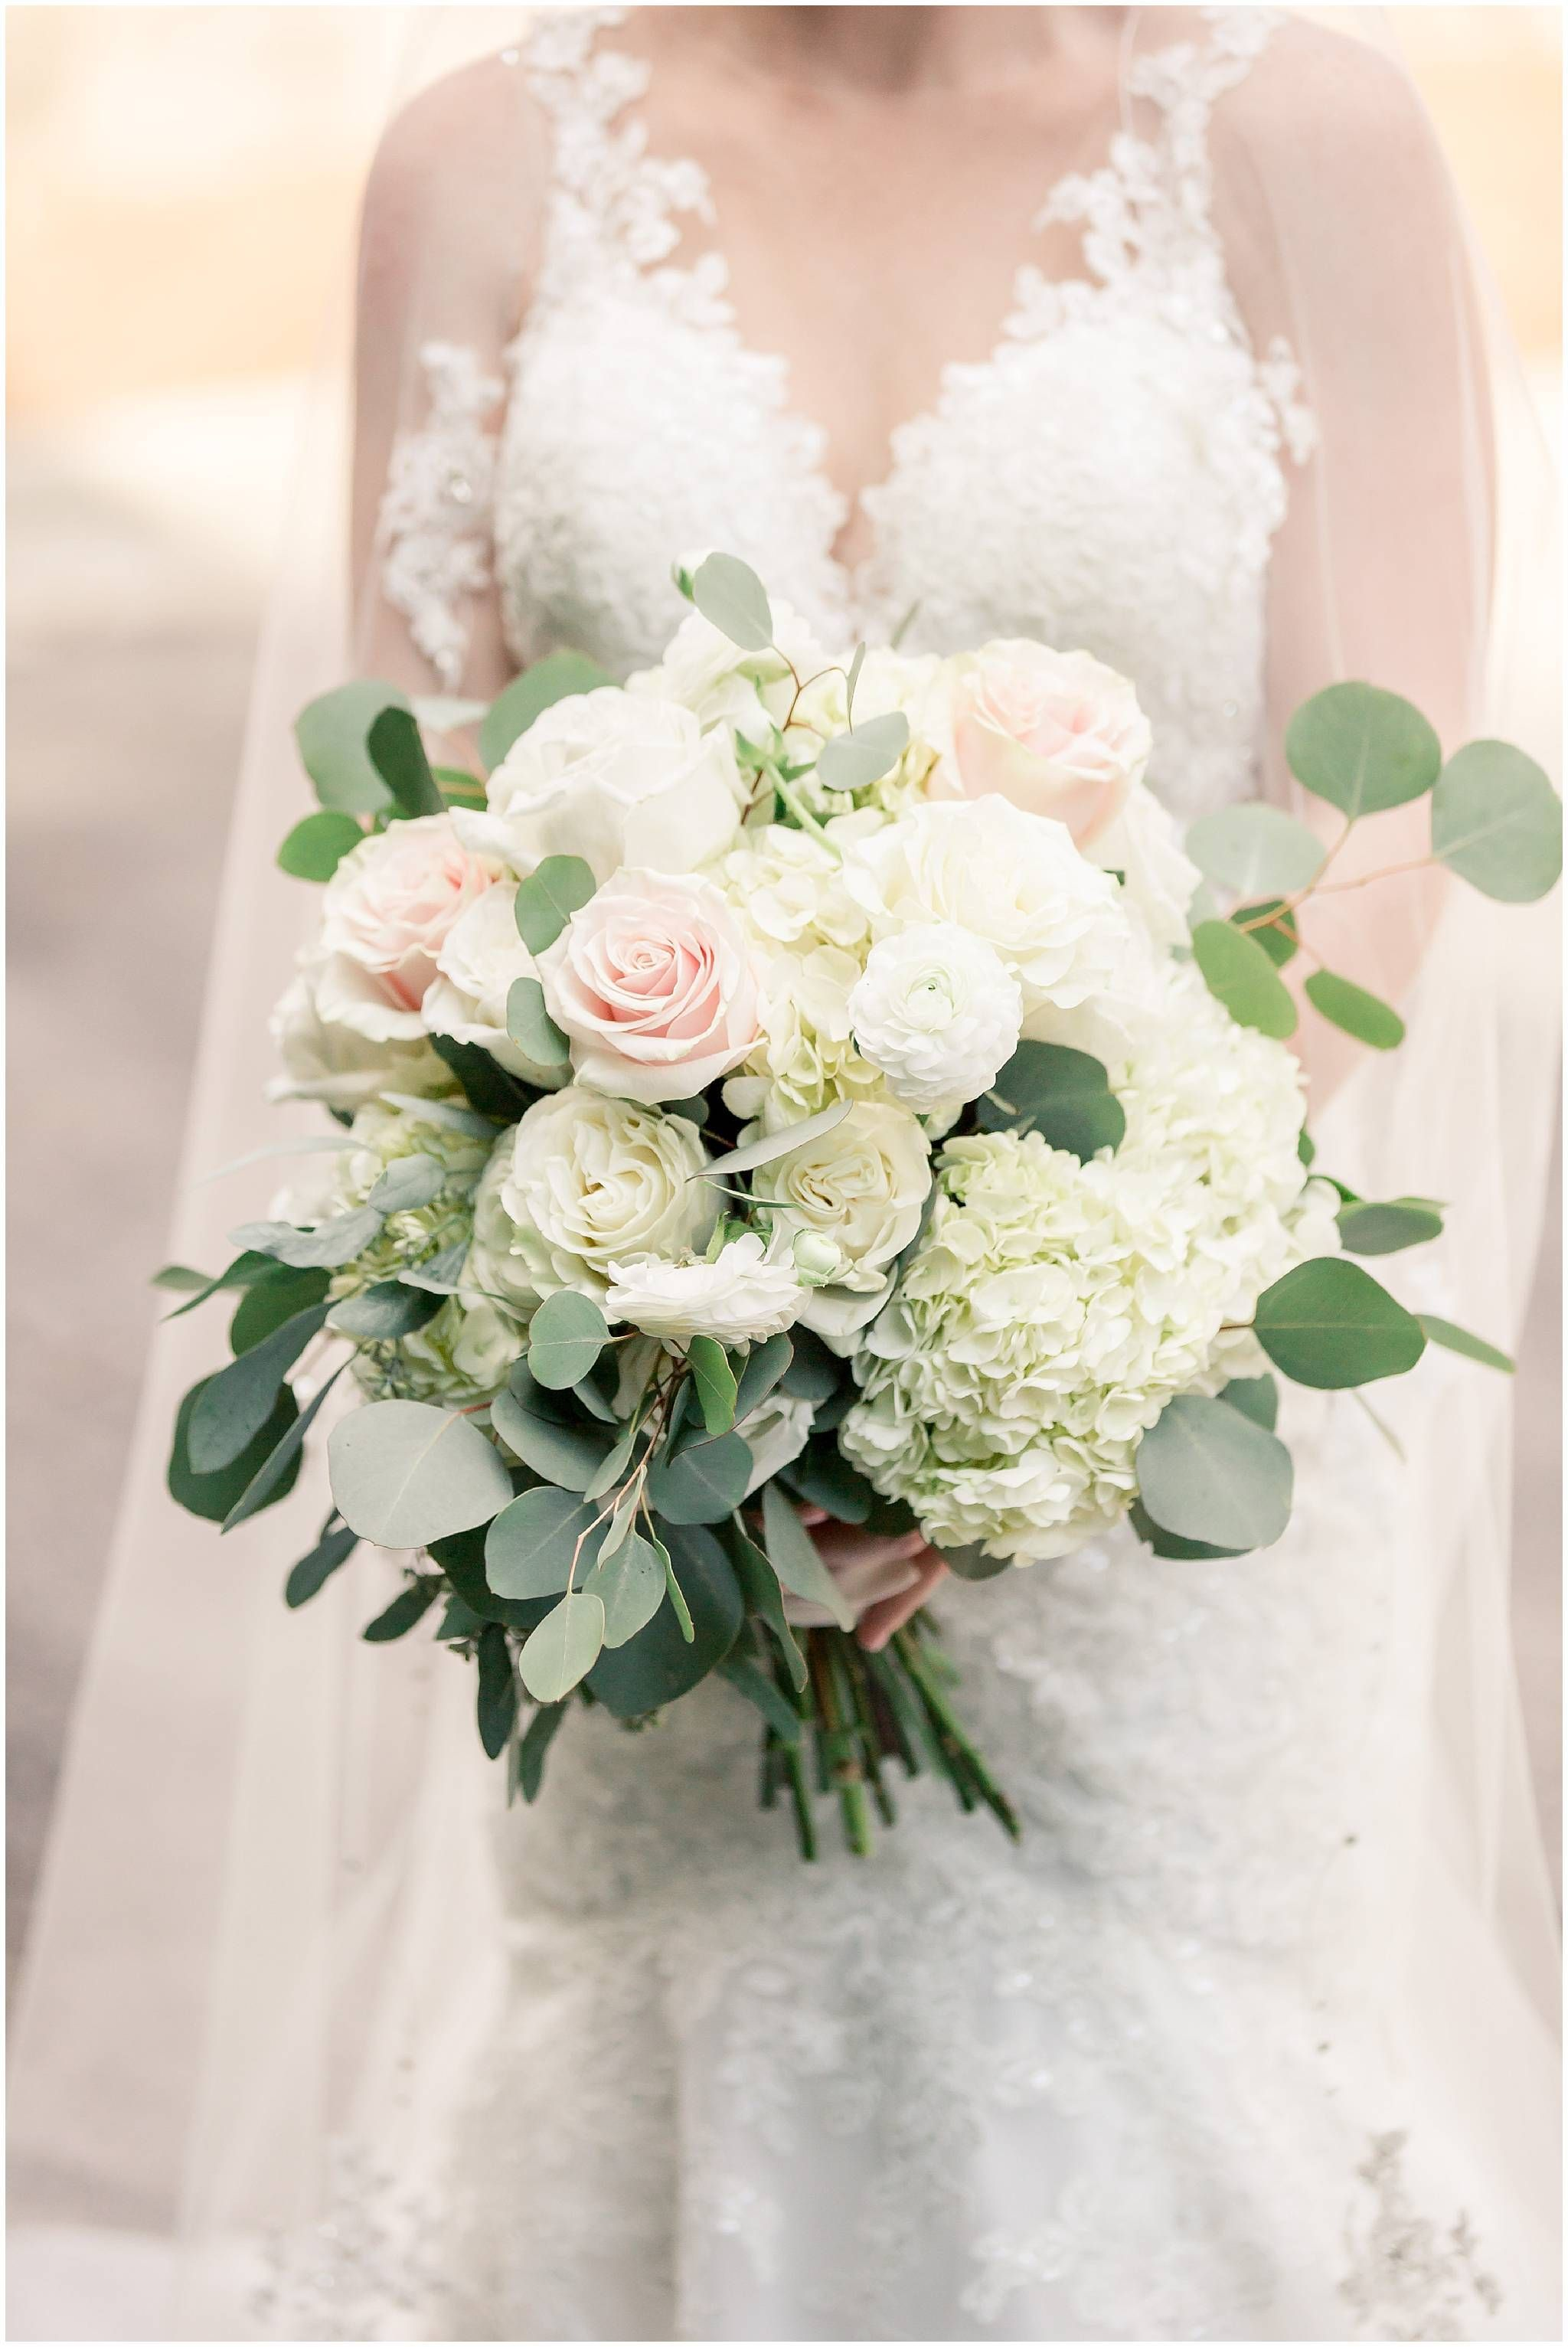 Romantic Bridal Bouquet Large Brides Bouquet Eucalyptus Roses Hydrangeas Garden Rose Greene Bridal Bouquet Pink Blush Bridal Bouquet White Bridal Bouquet